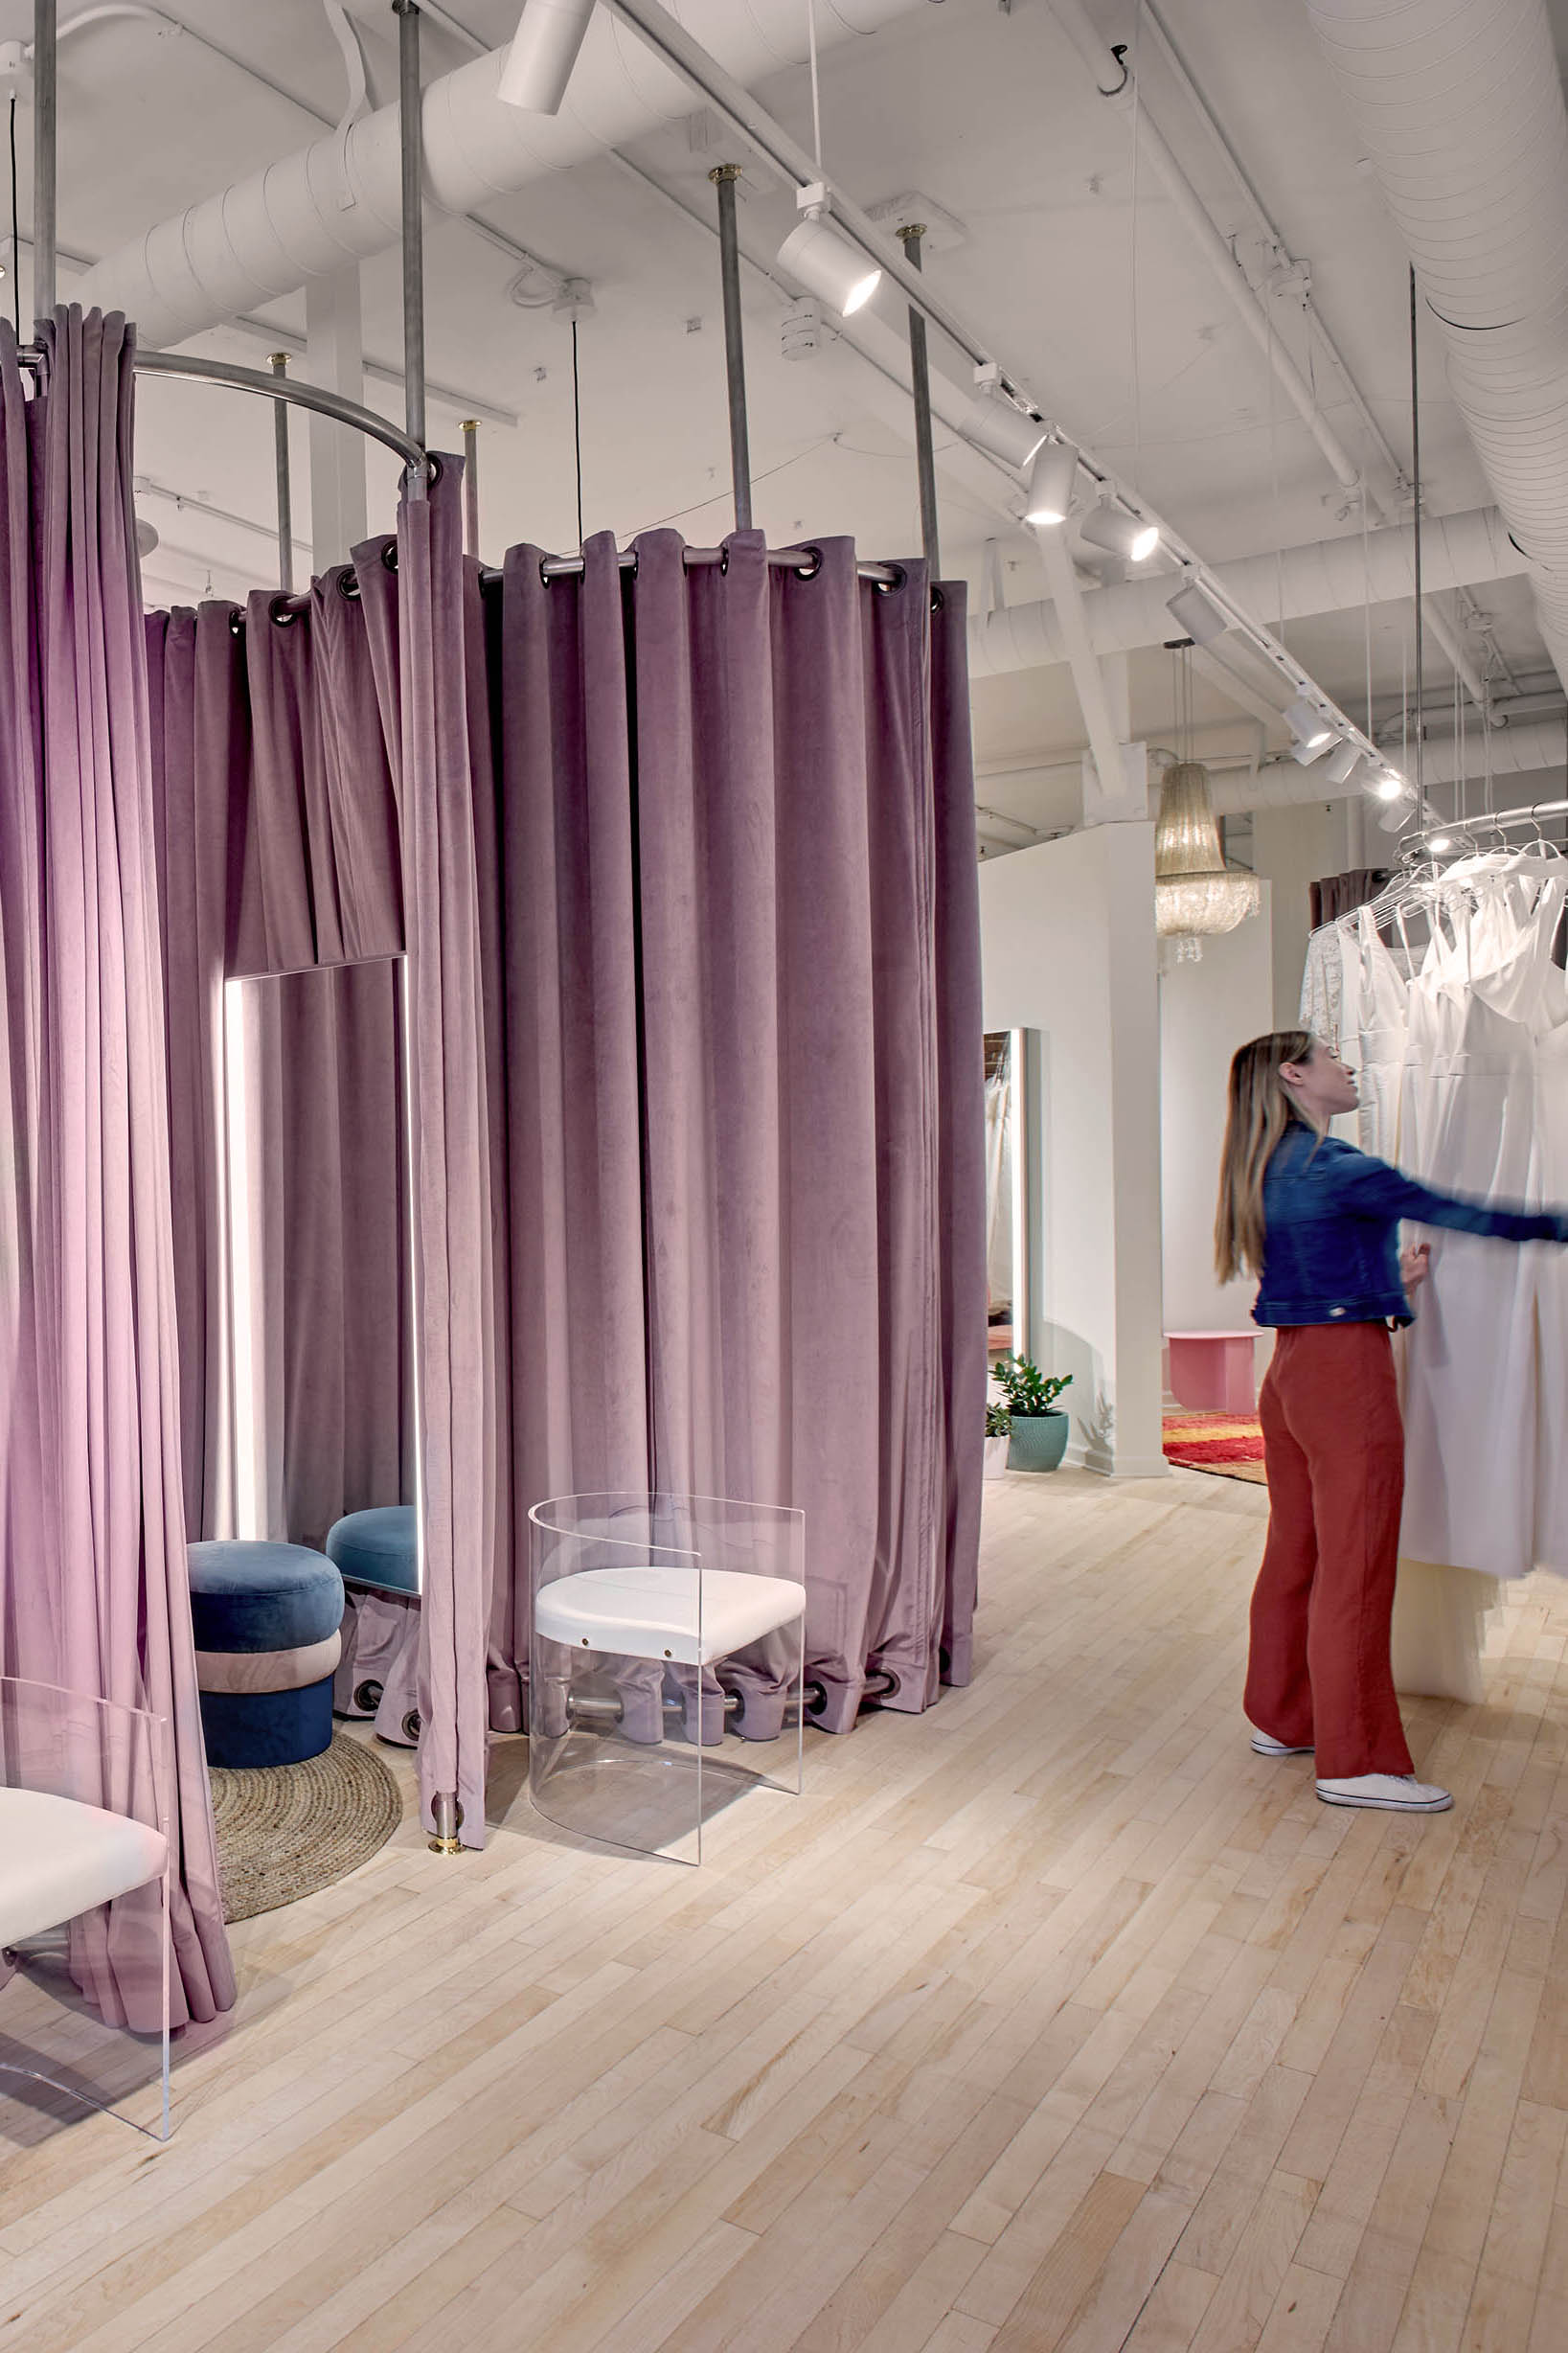 Vow'd Knoxville Store Fitting Room